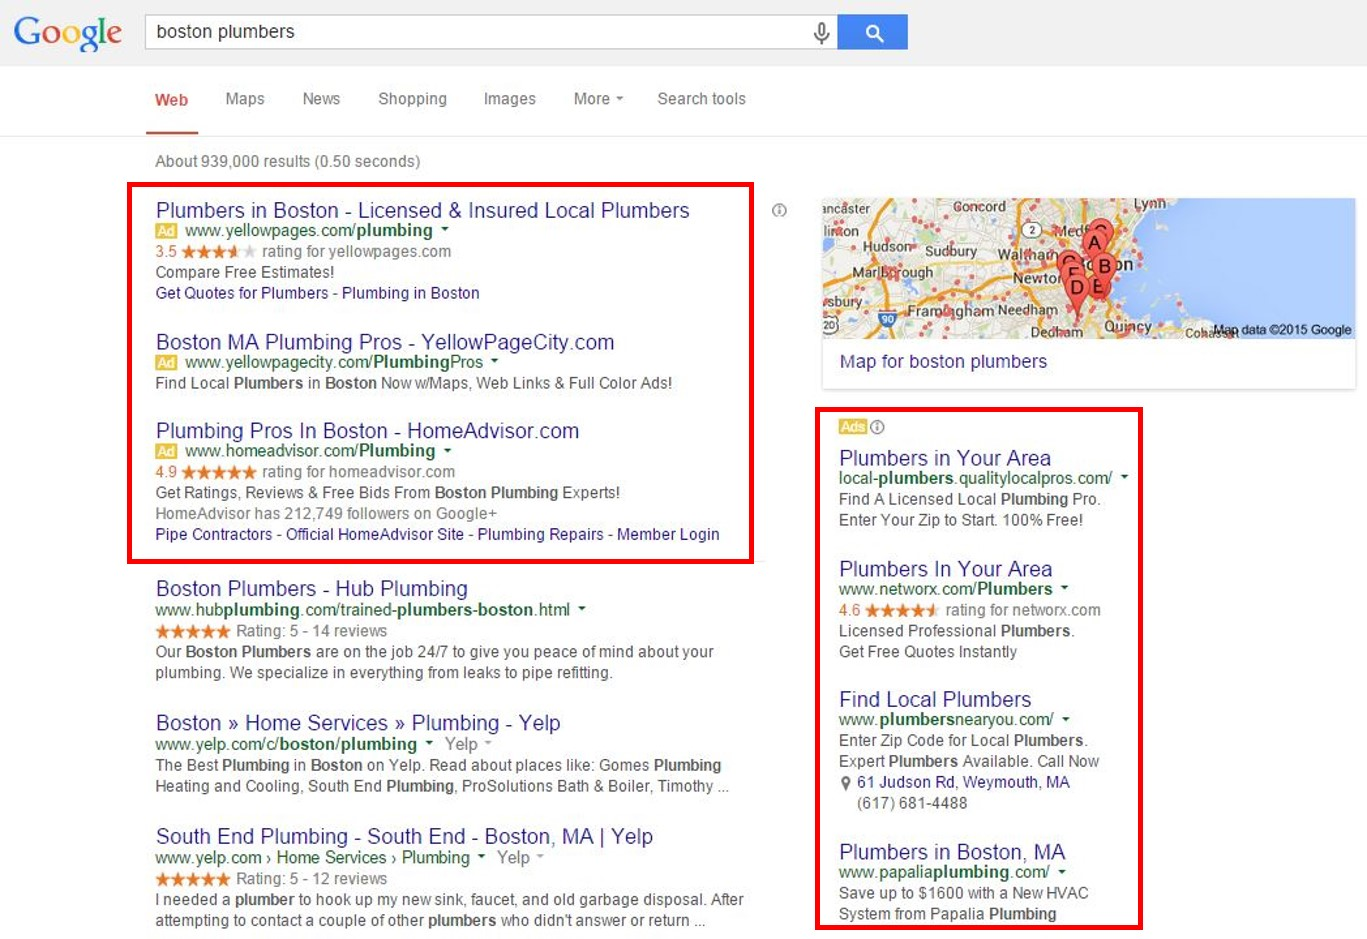 Google Marketing Tools Google AdWords search engine results by Boston Plumbers